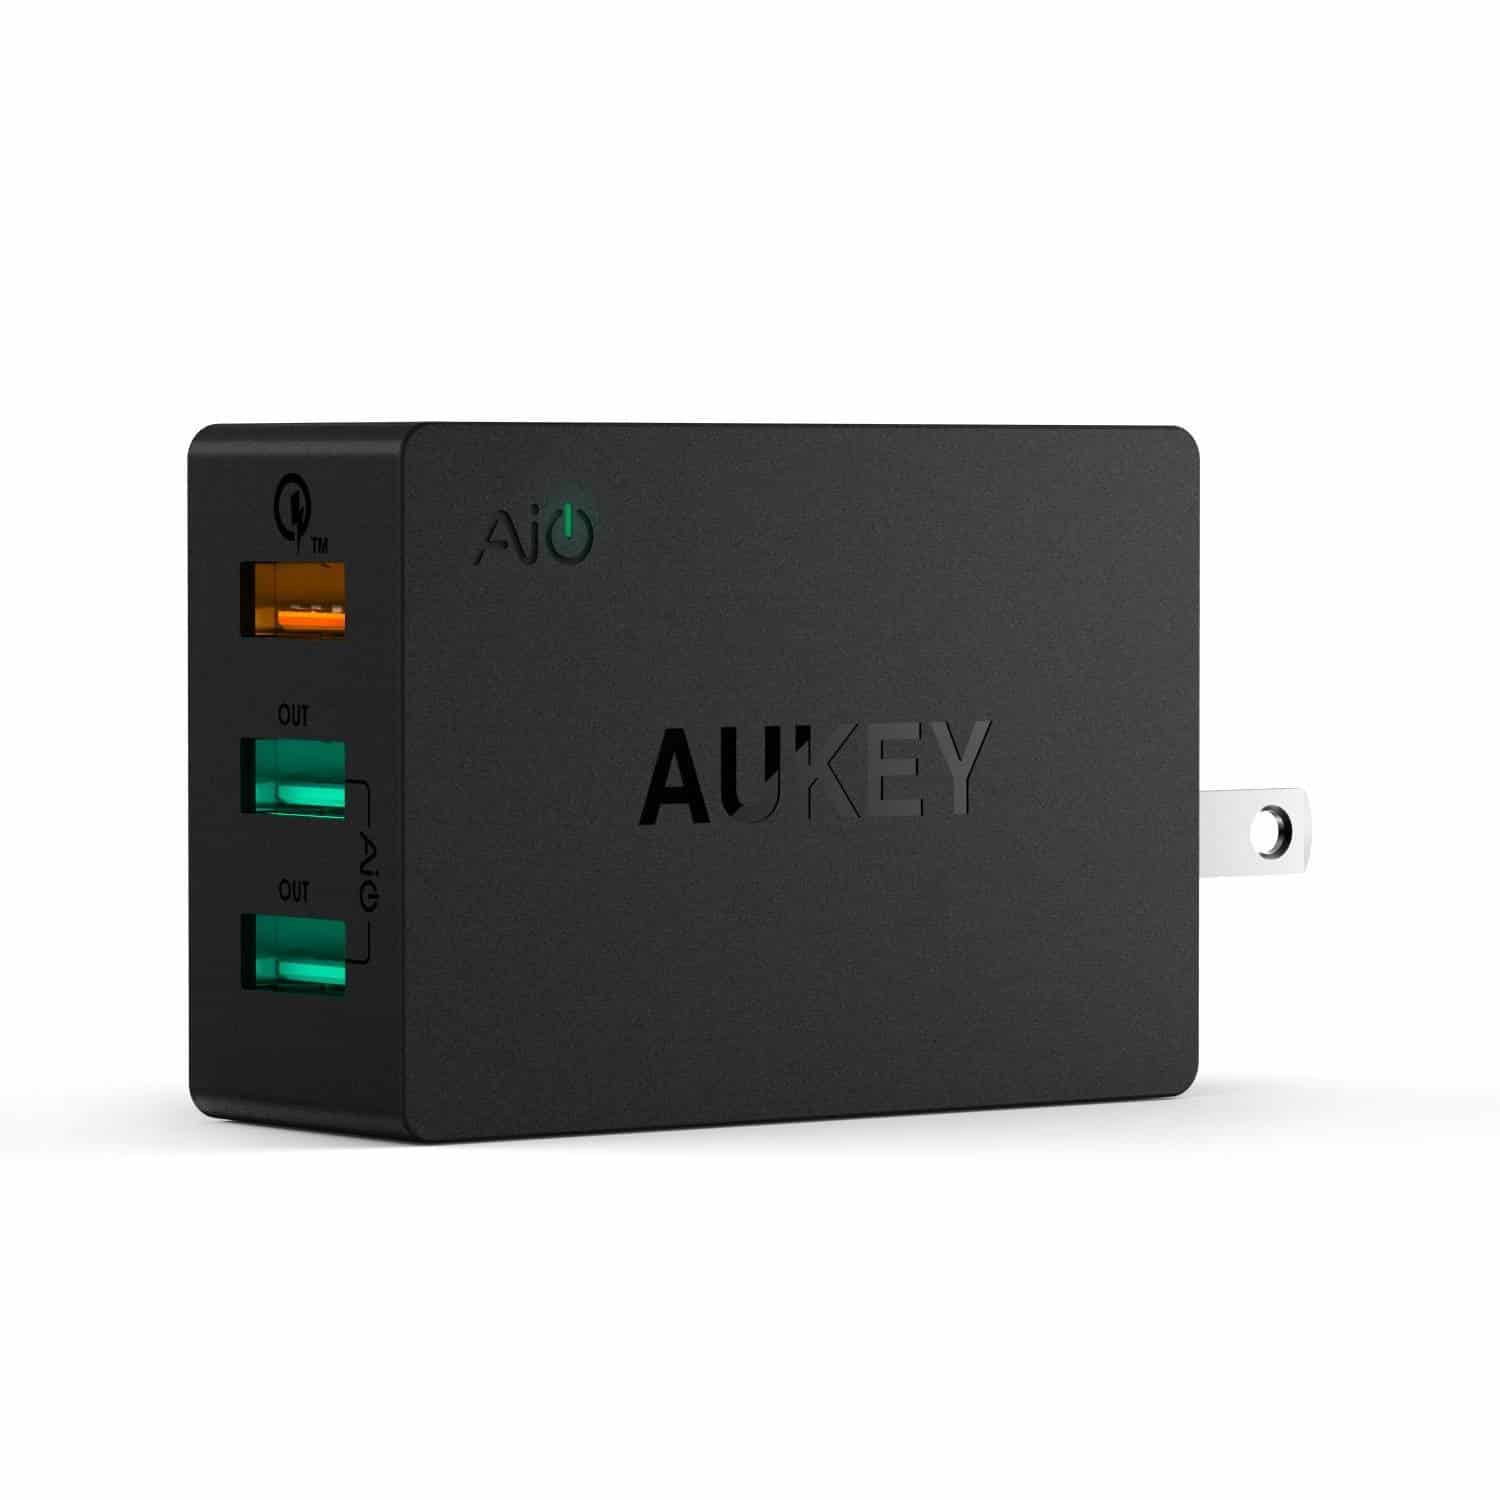 aukey-3-port-charger-black-1